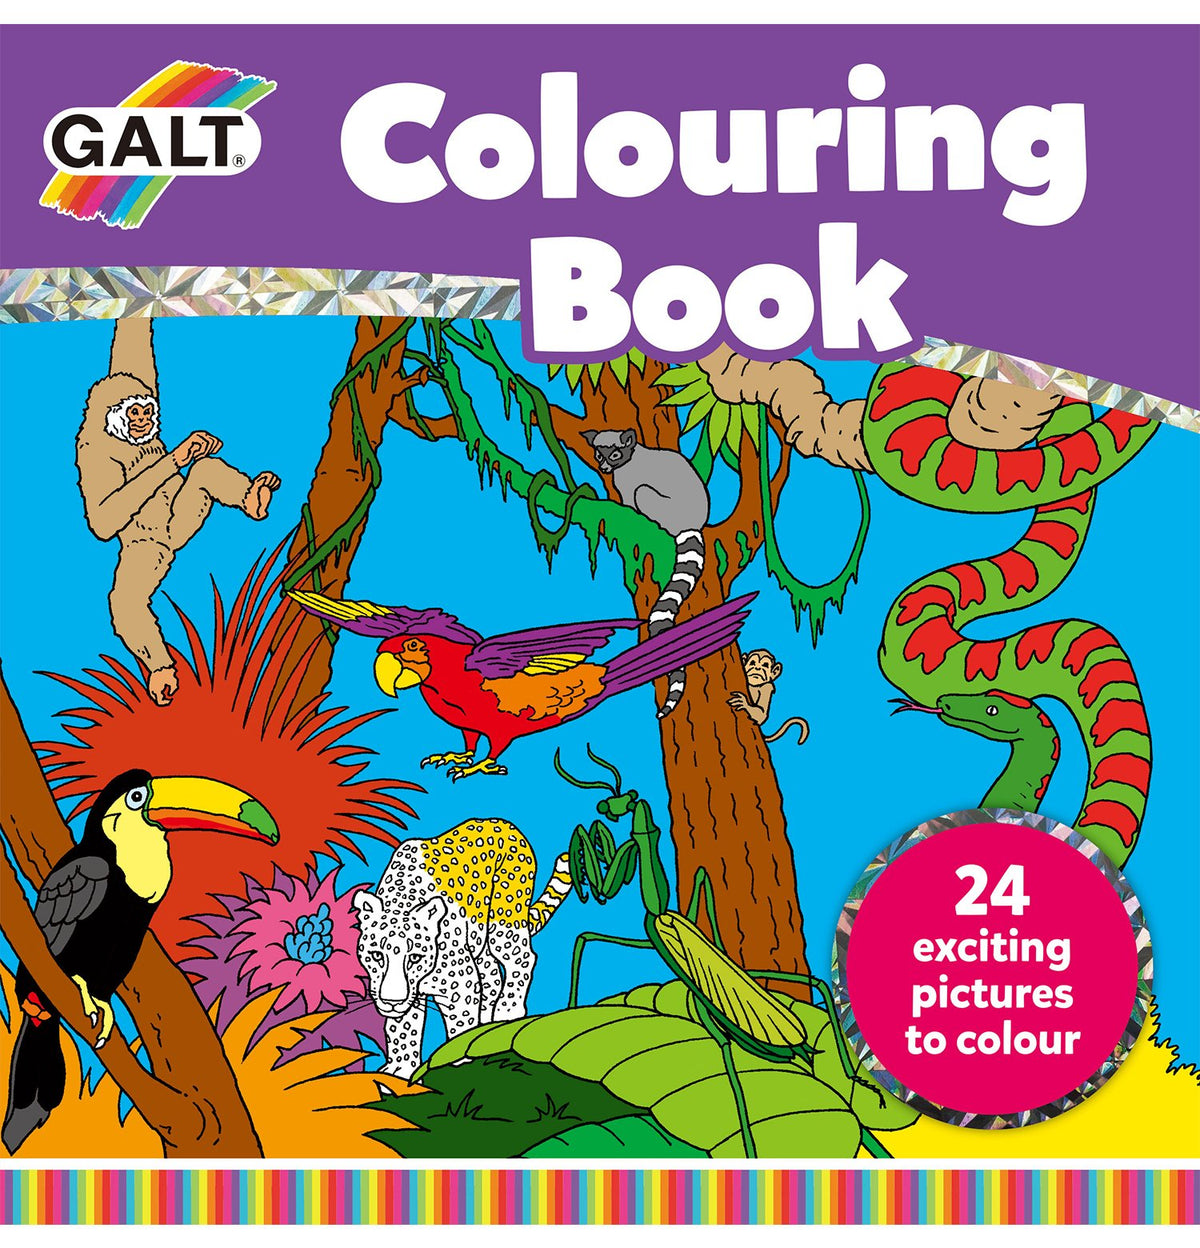 Colouring Book 2017 - Galt